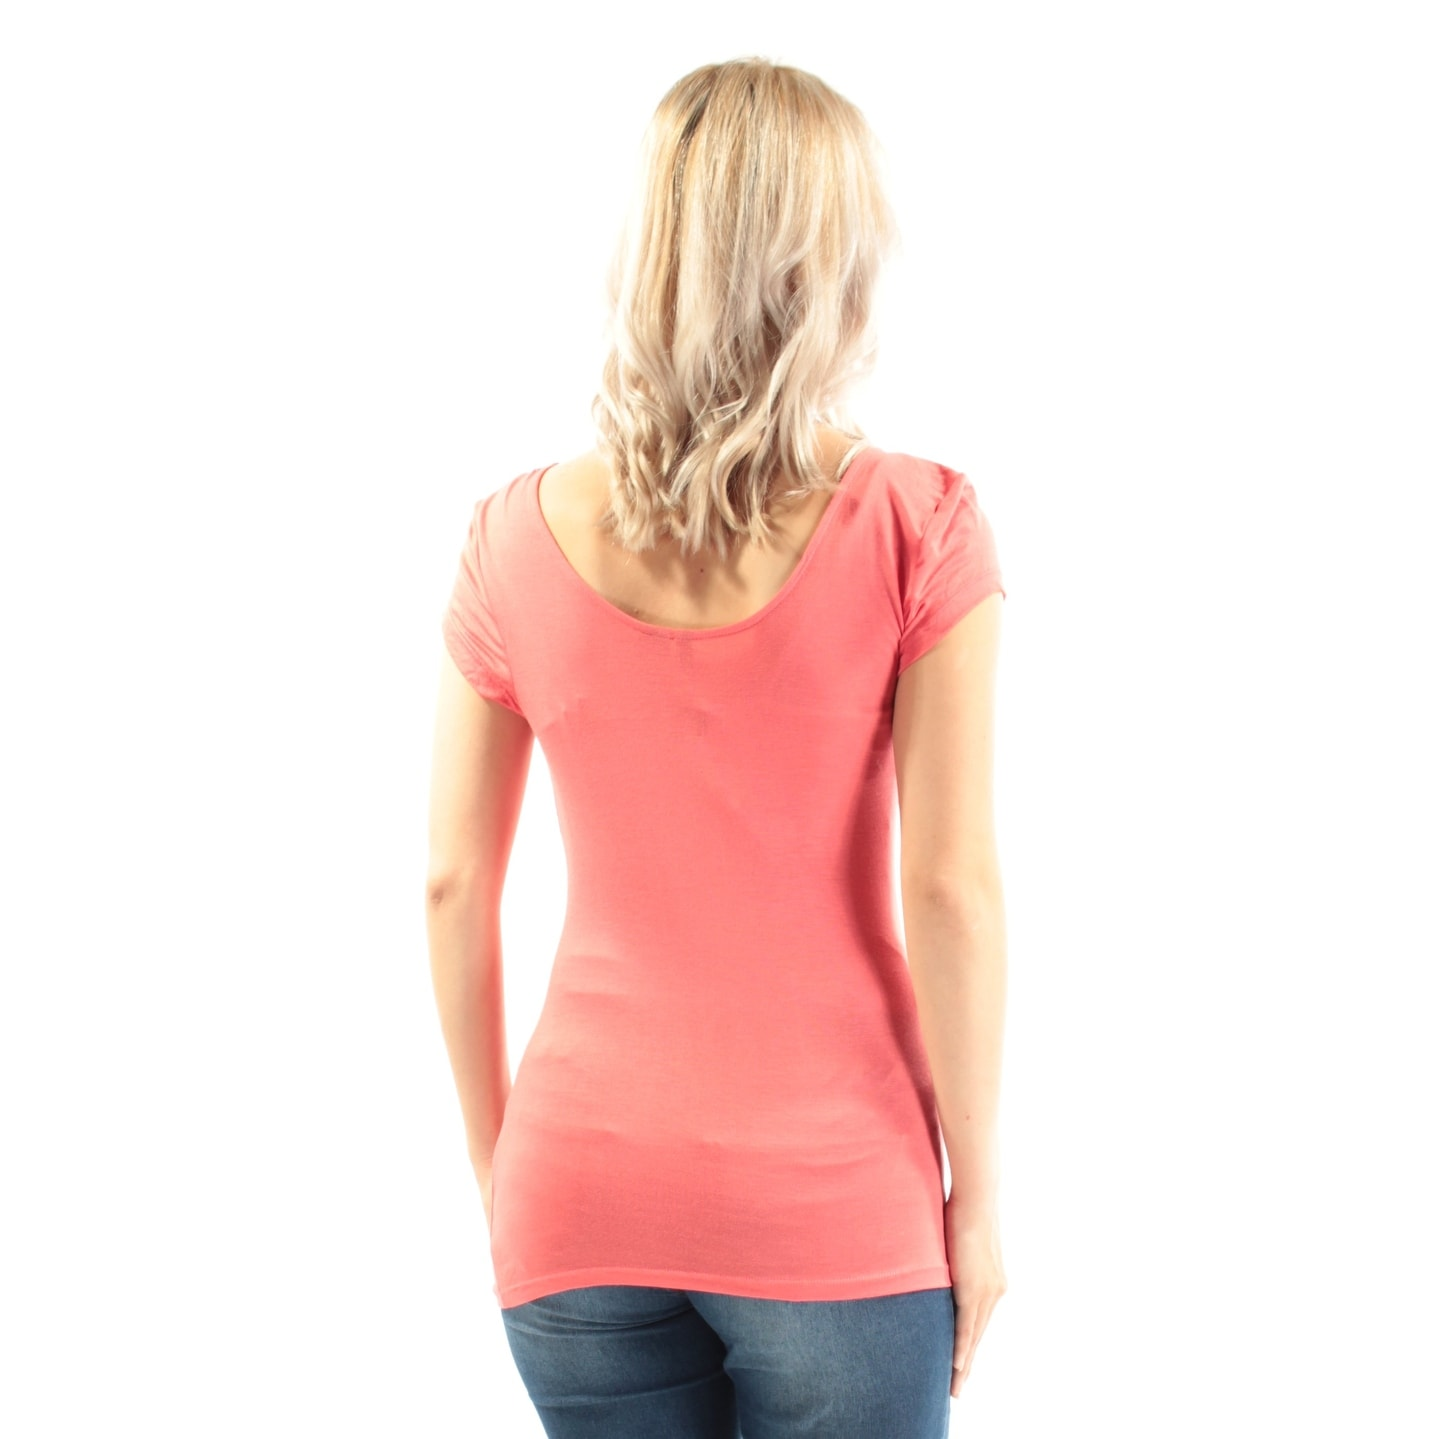 0a8cda4b87 Shop ULTRA FLIRT  13 Womens New 3414 Coral Short Sleeve T-Shirt S Juniors  B+B - Free Shipping On Orders Over  45 - Overstock.com - 21350691